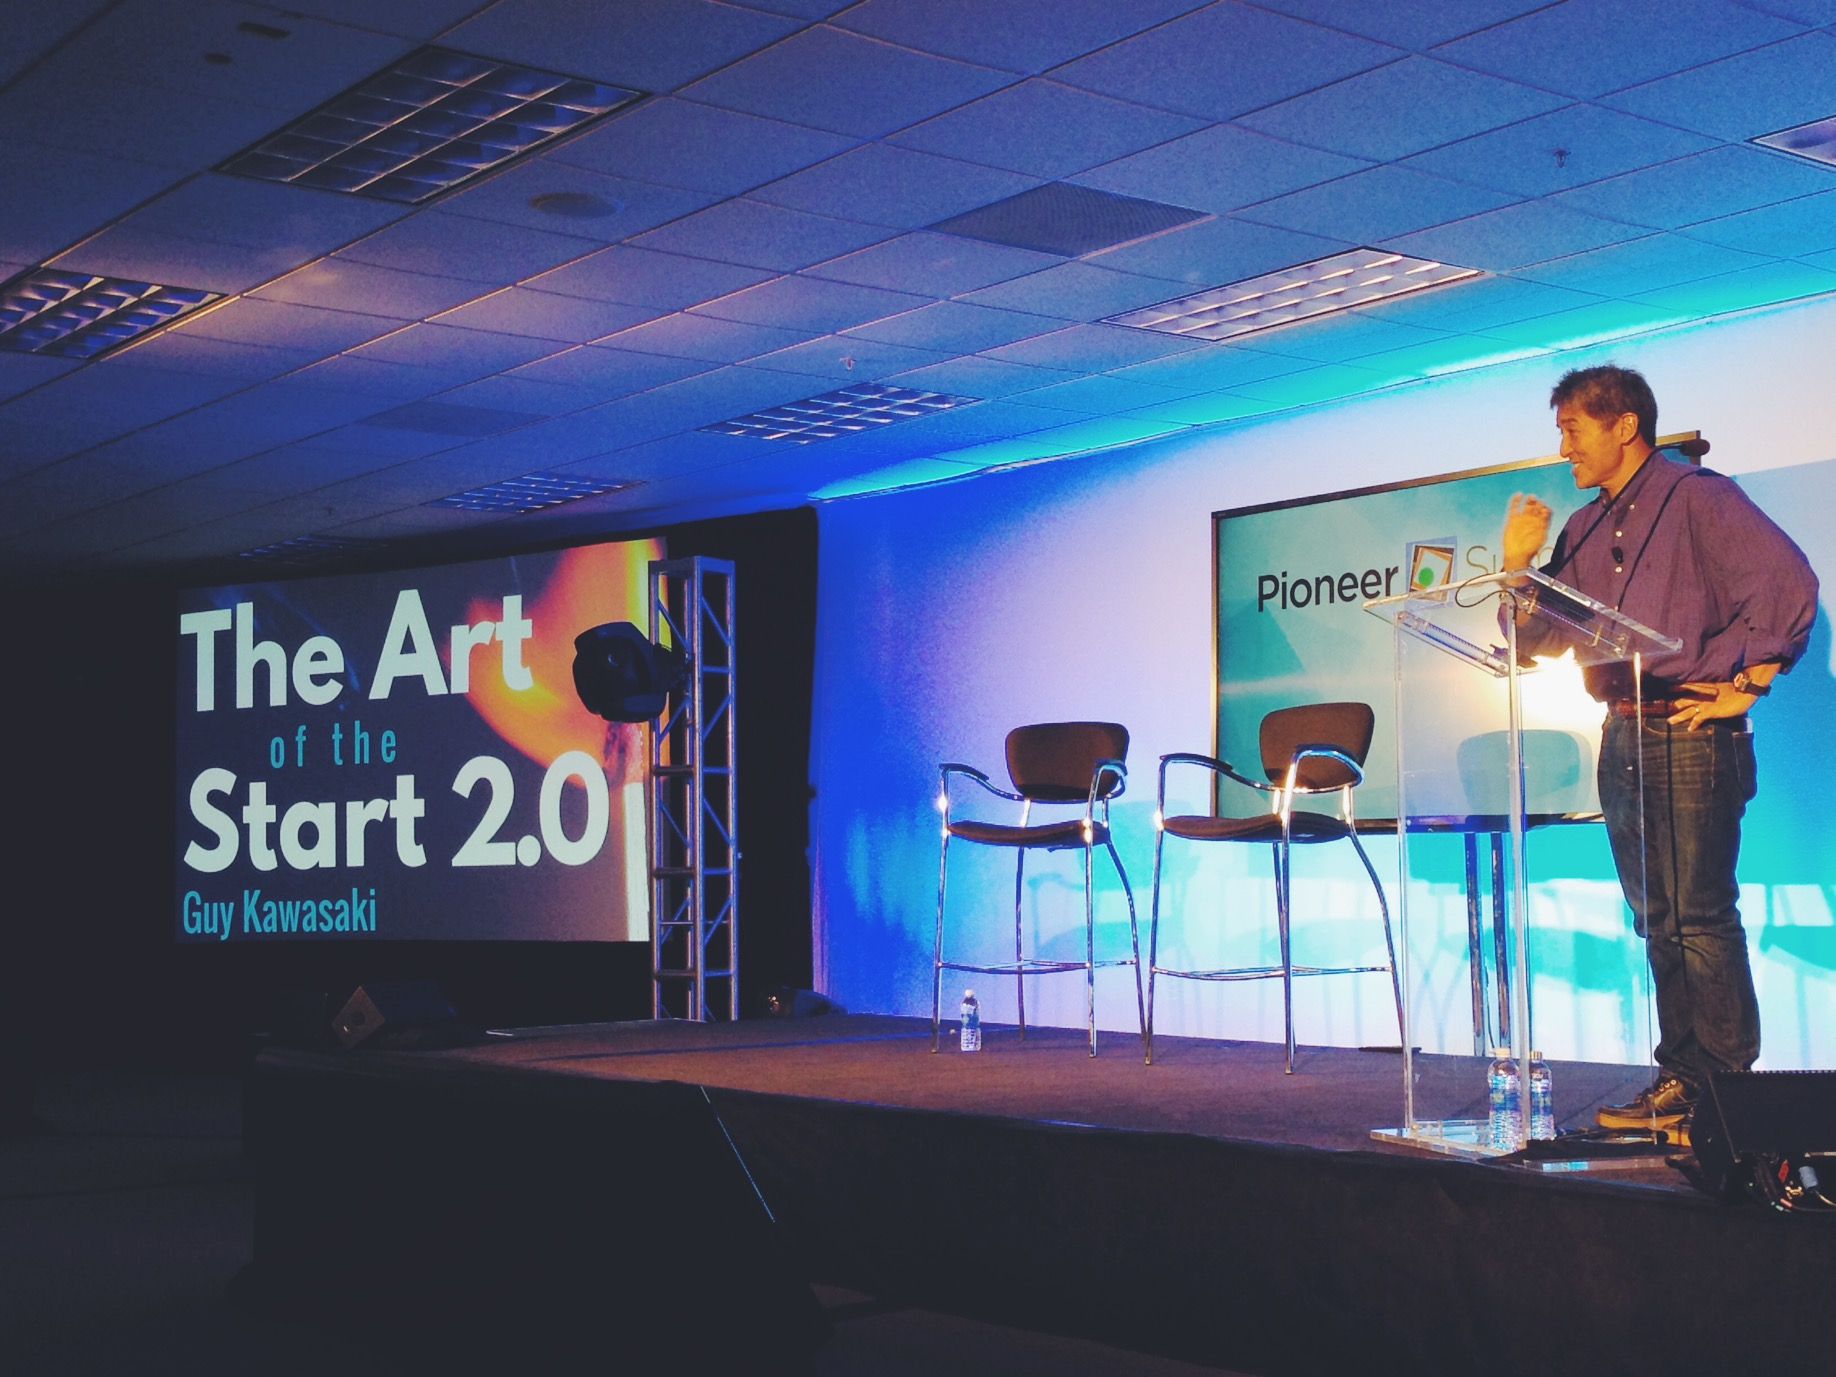 Guy Kawasaki - The Art of The Start 2.0